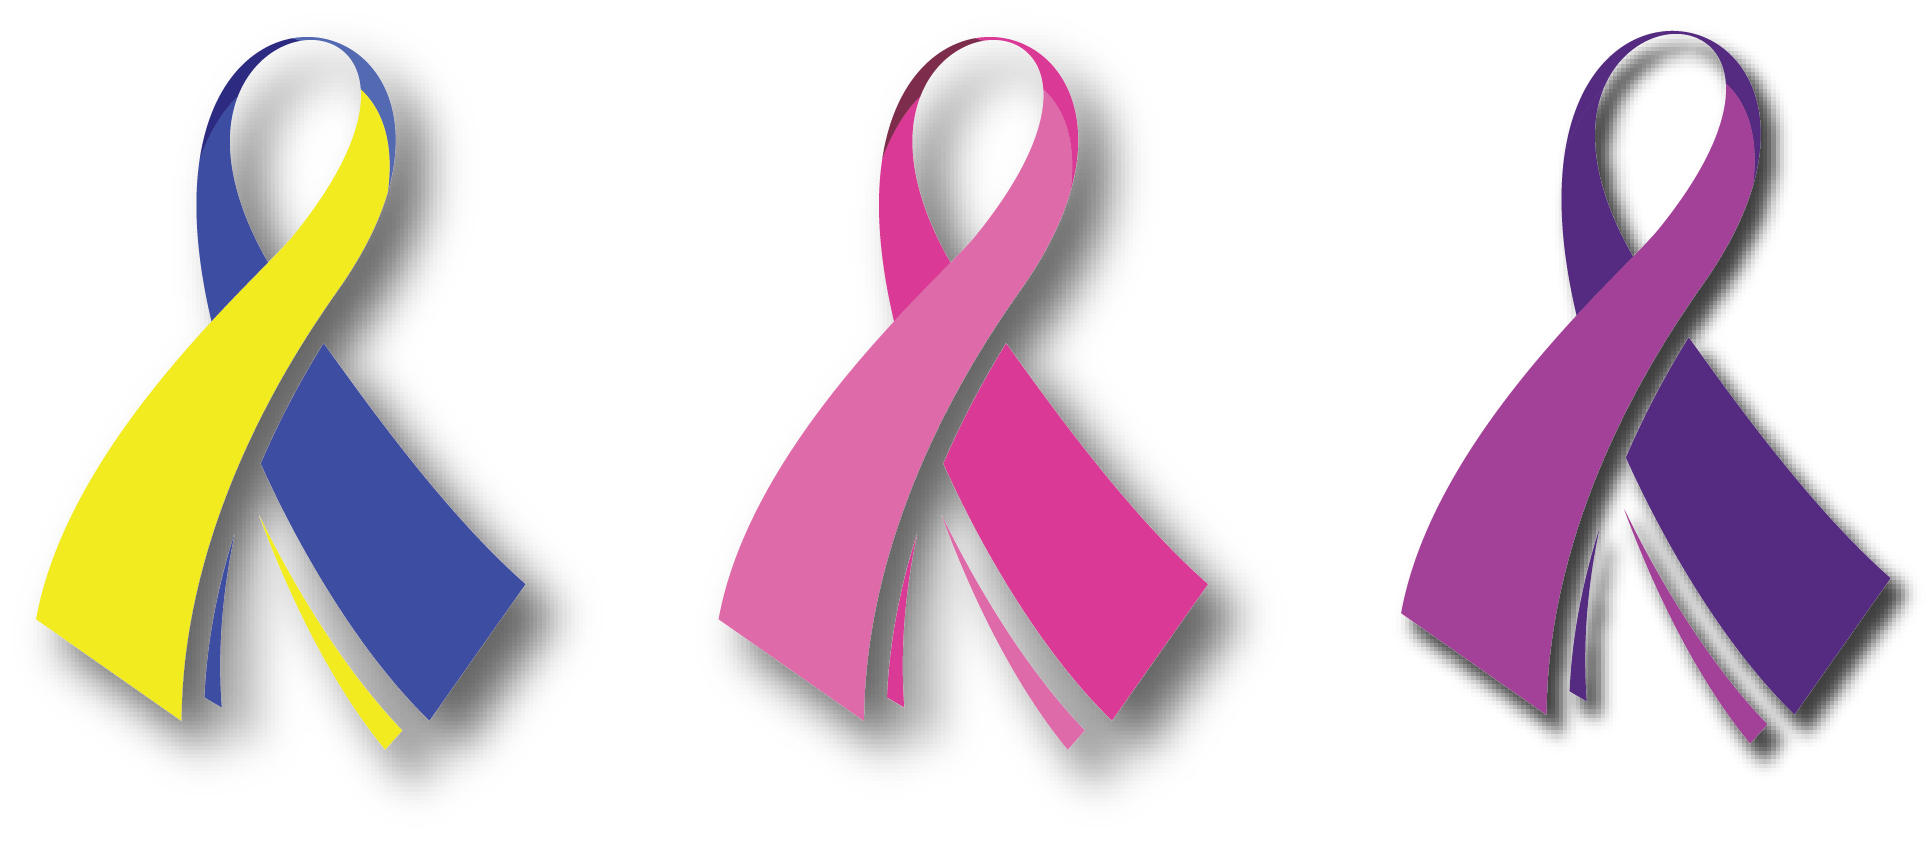 27 Breast Cancer Ribbon Png Free Cliparts That You Can Download To You